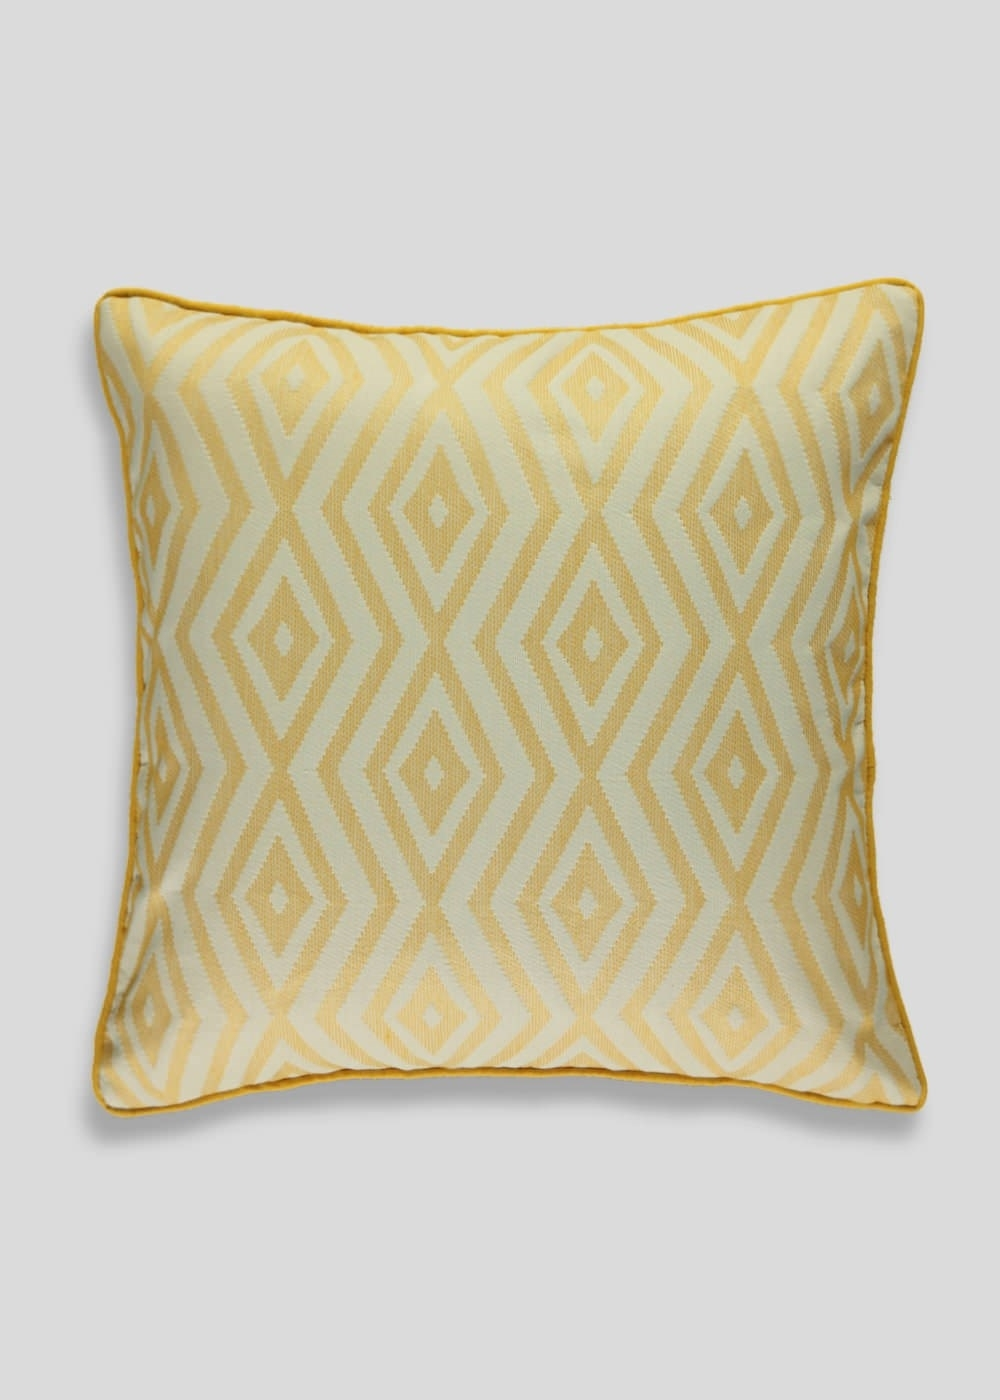 Geo Jacquard Cushion (45Cm X 45Cm) – Matalan | Home Accessories Within Most Current Matalan Canvas Wall Art (Gallery 8 of 15)